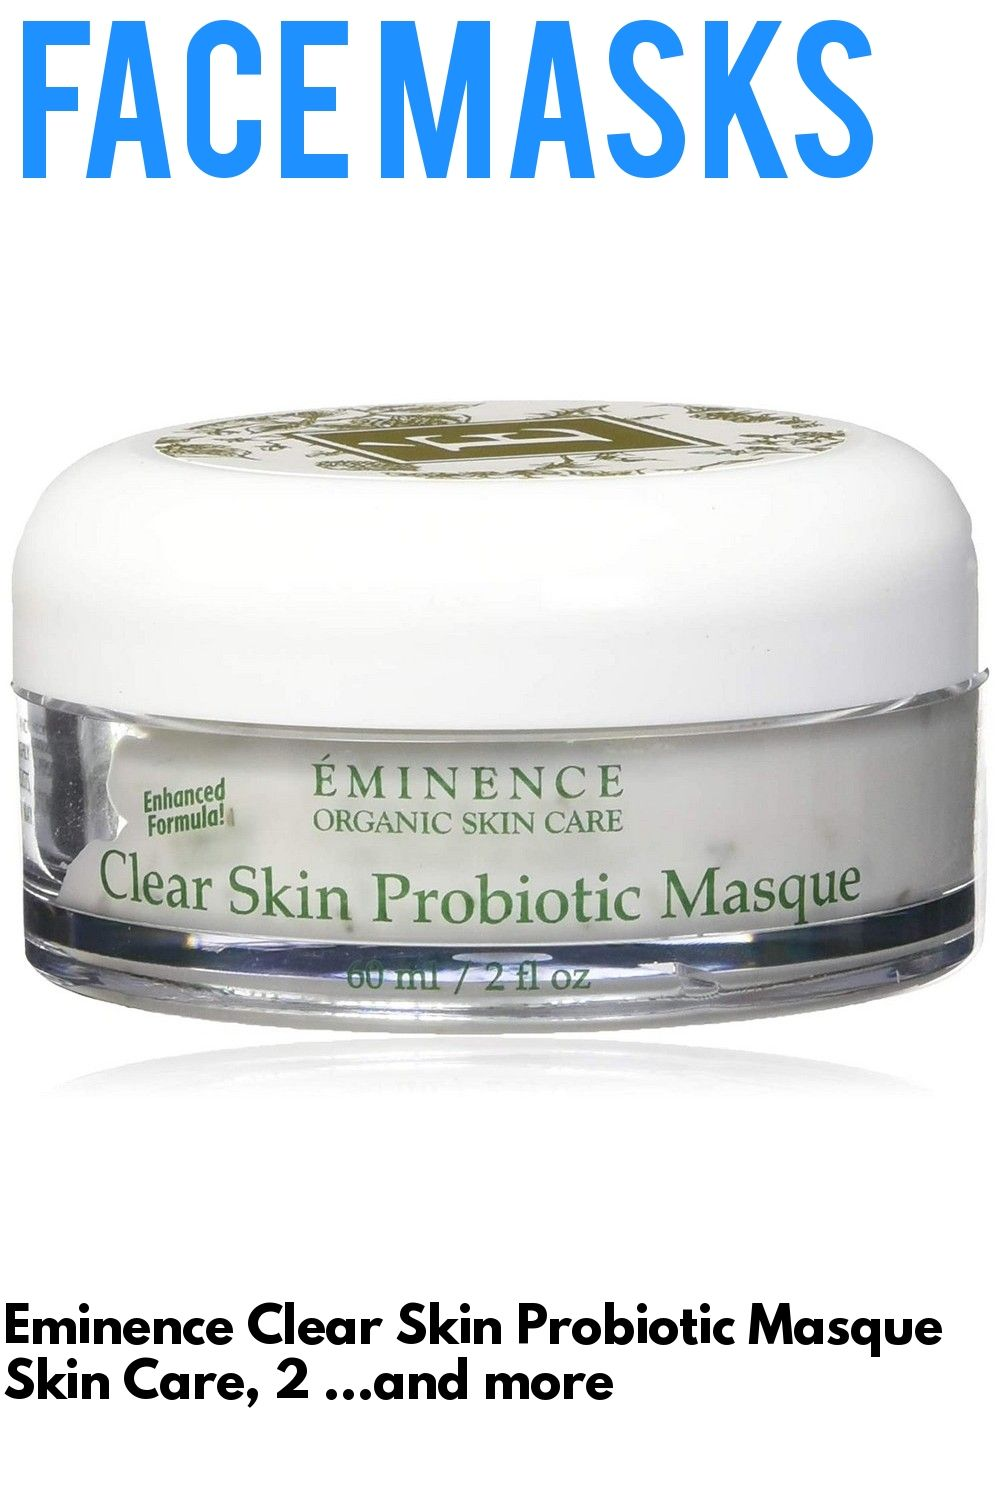 Eminence Clear Skin Probiotic Masque Skin Care 2 Ounce In 2020 Clear Skin Skin Care Organic Skin Care